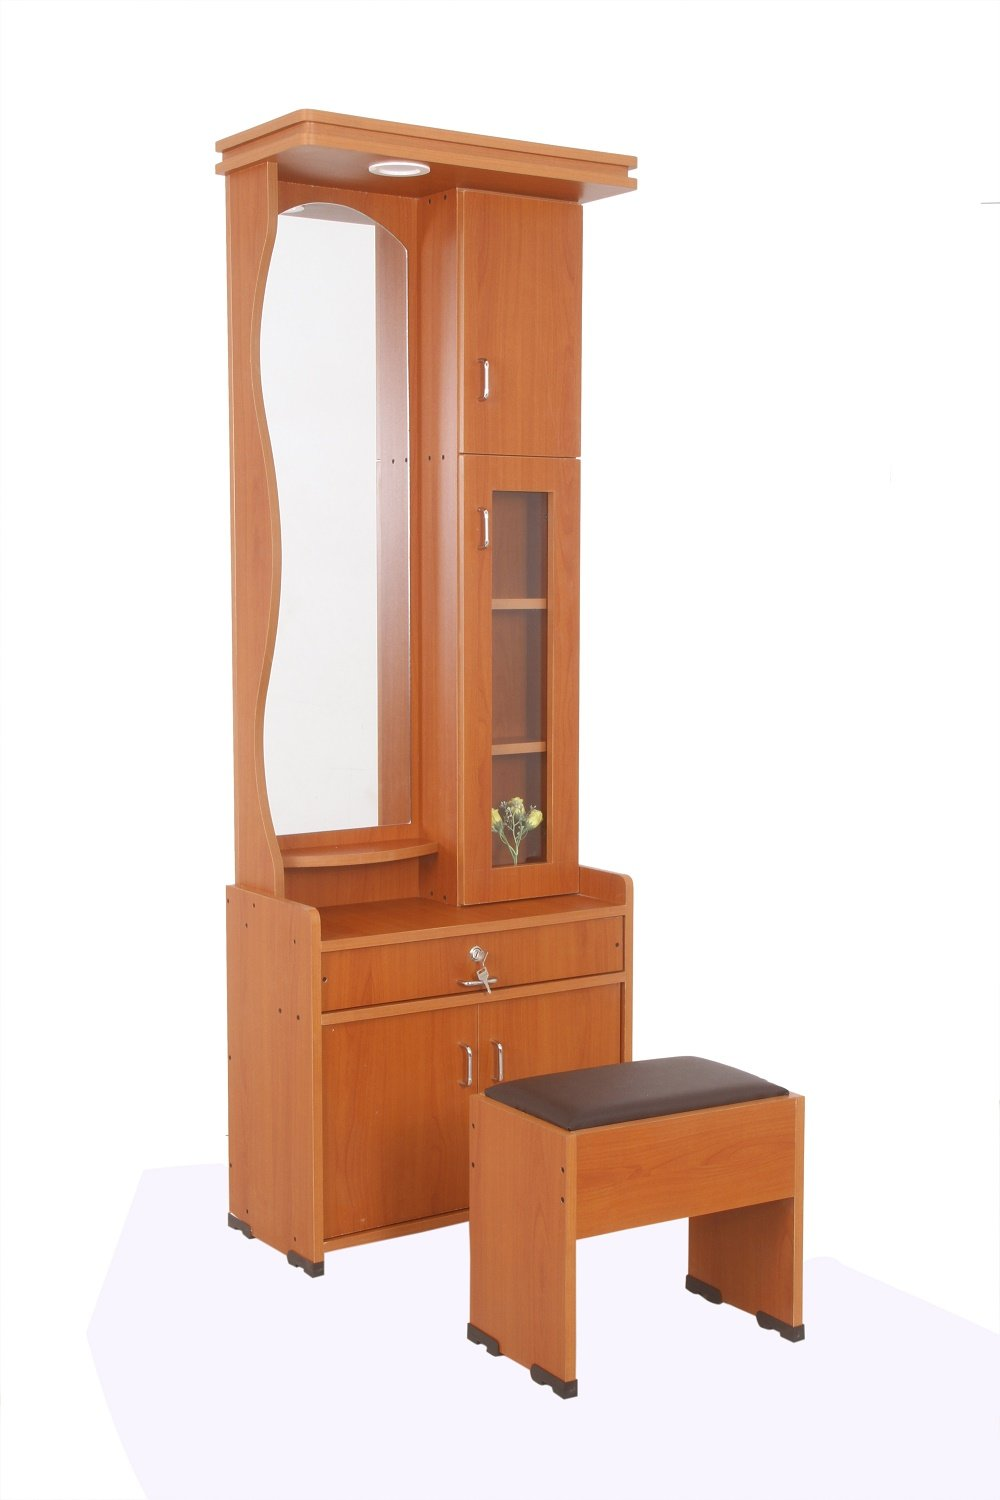 Indian dressing table designs with mirror - Joy S Furnitures Hi Tech Dressing Table With Storage Light And Stool